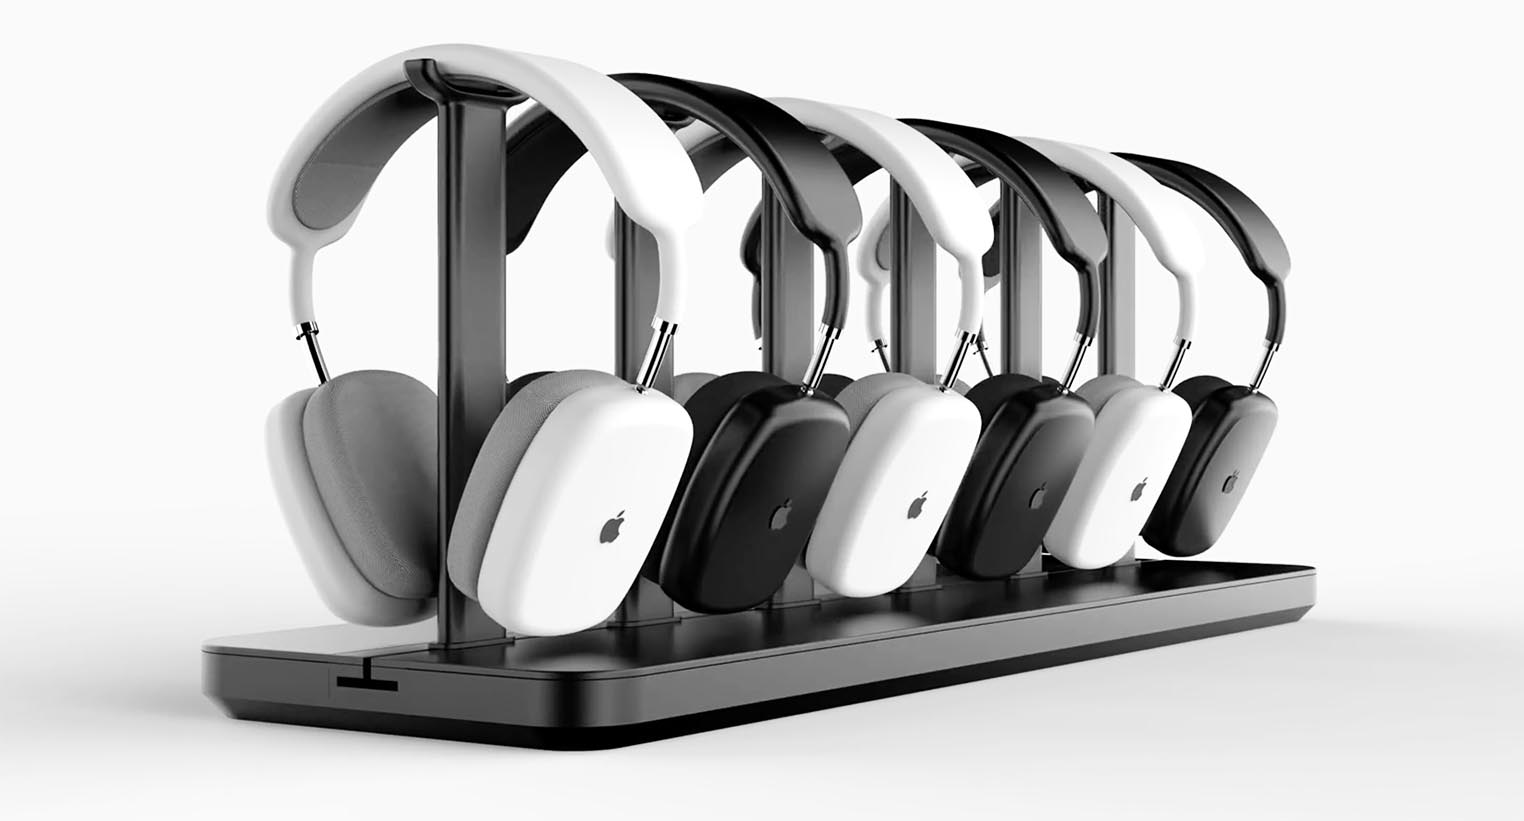 Casque Apple AirPods Studio concet